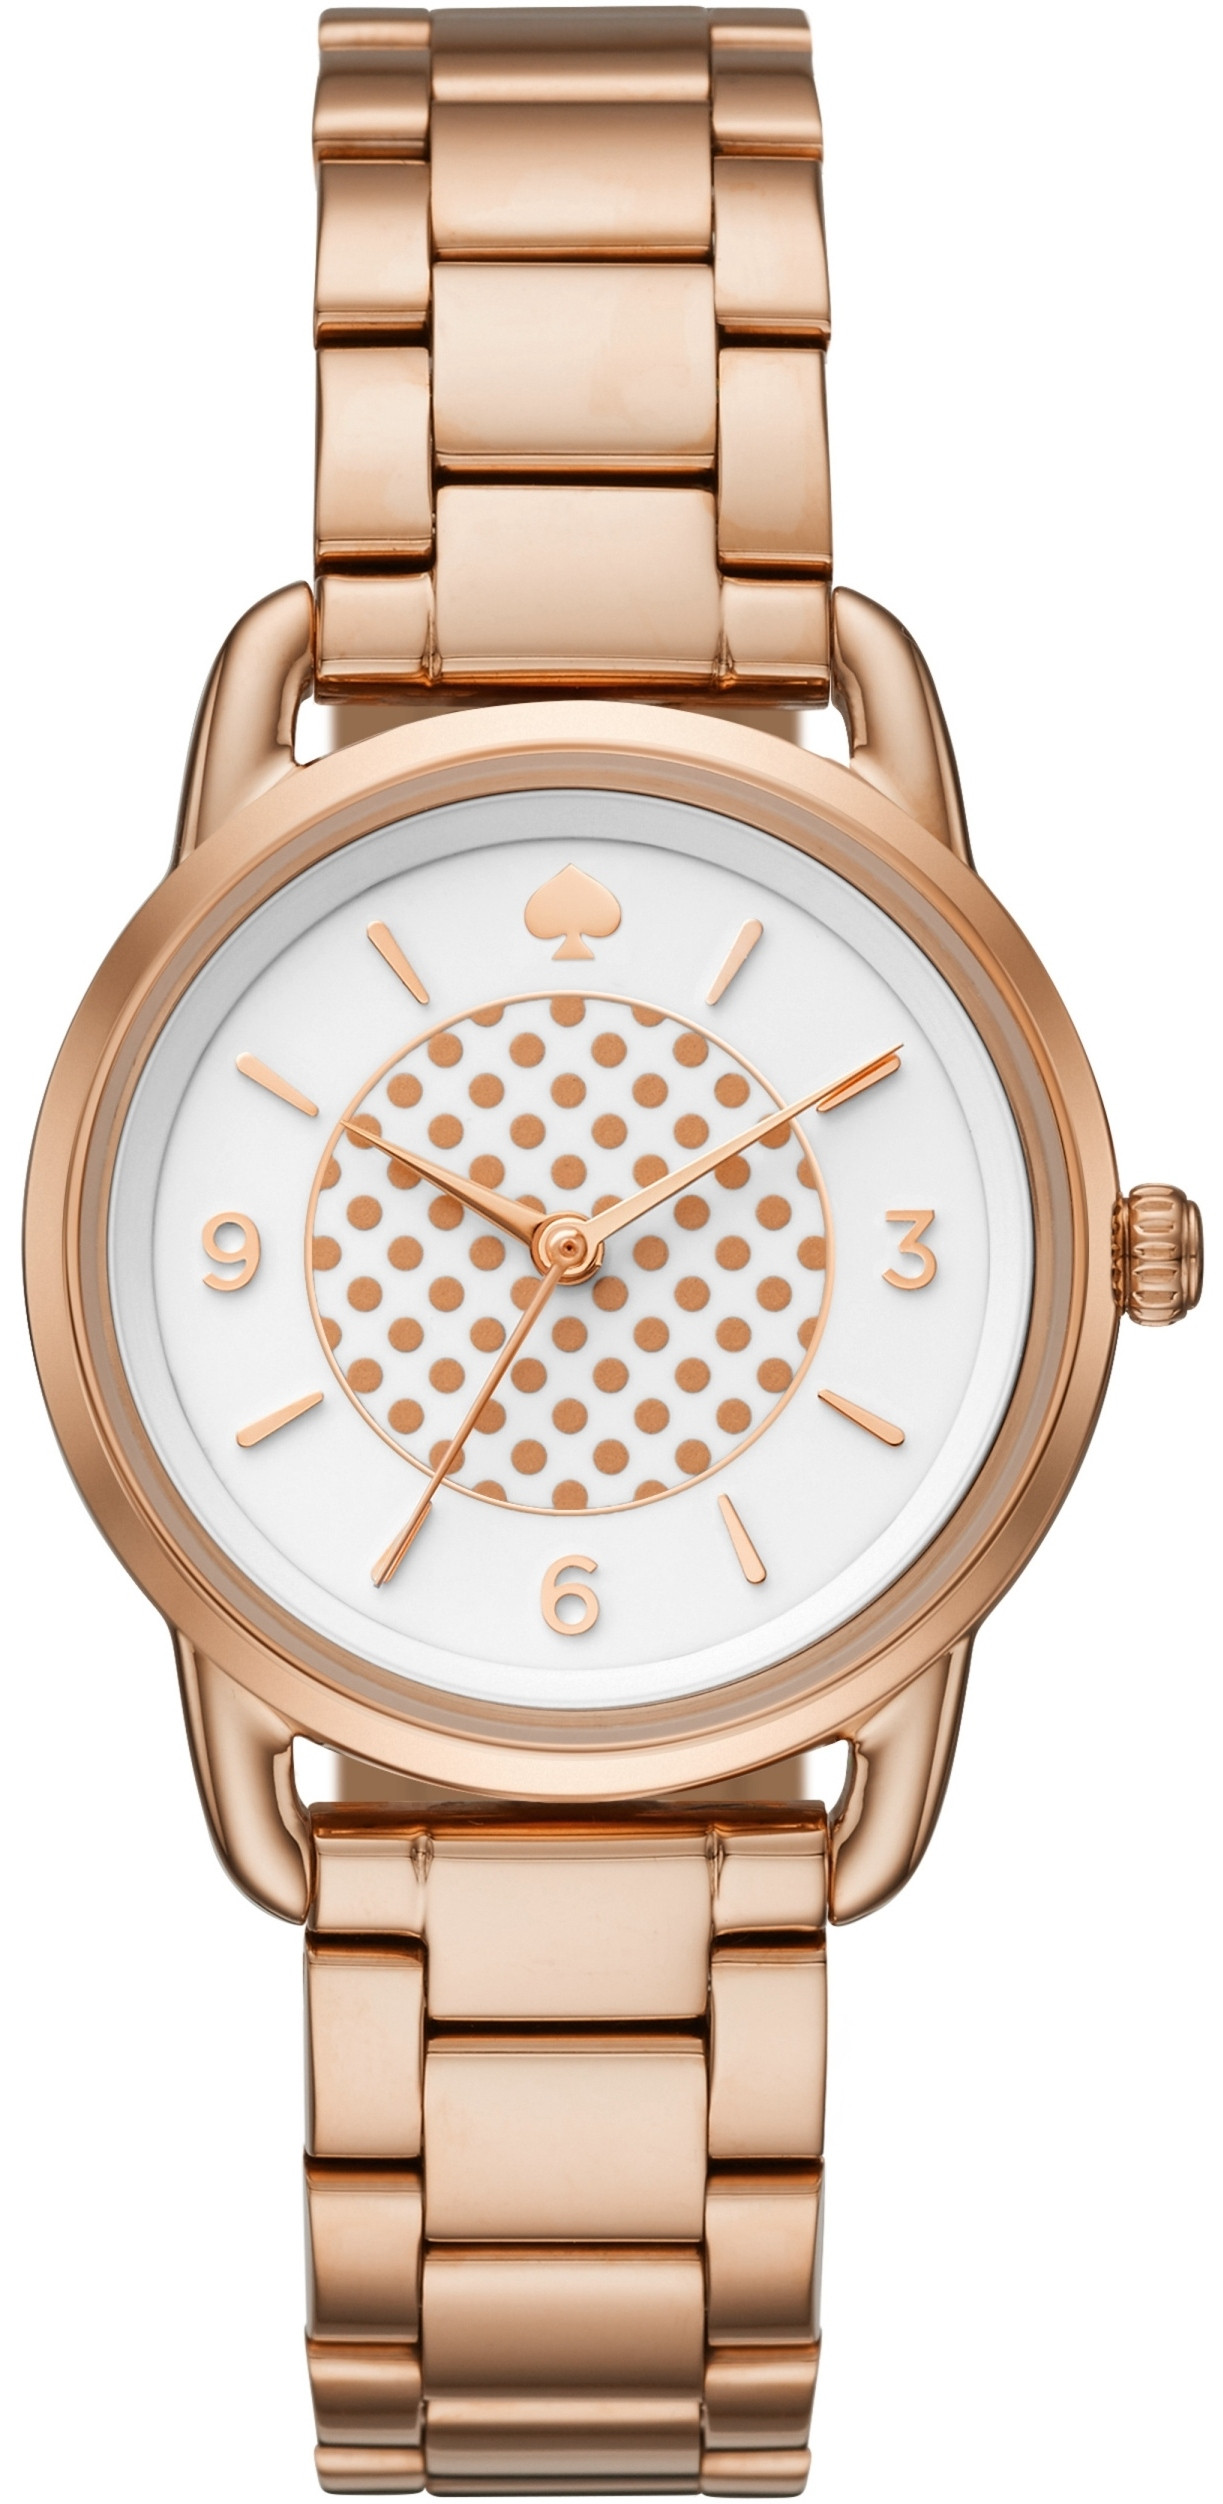 Kate Spade BoatHouse Women's White Dial Rose Gold Stainless Steel Watch KSW1167